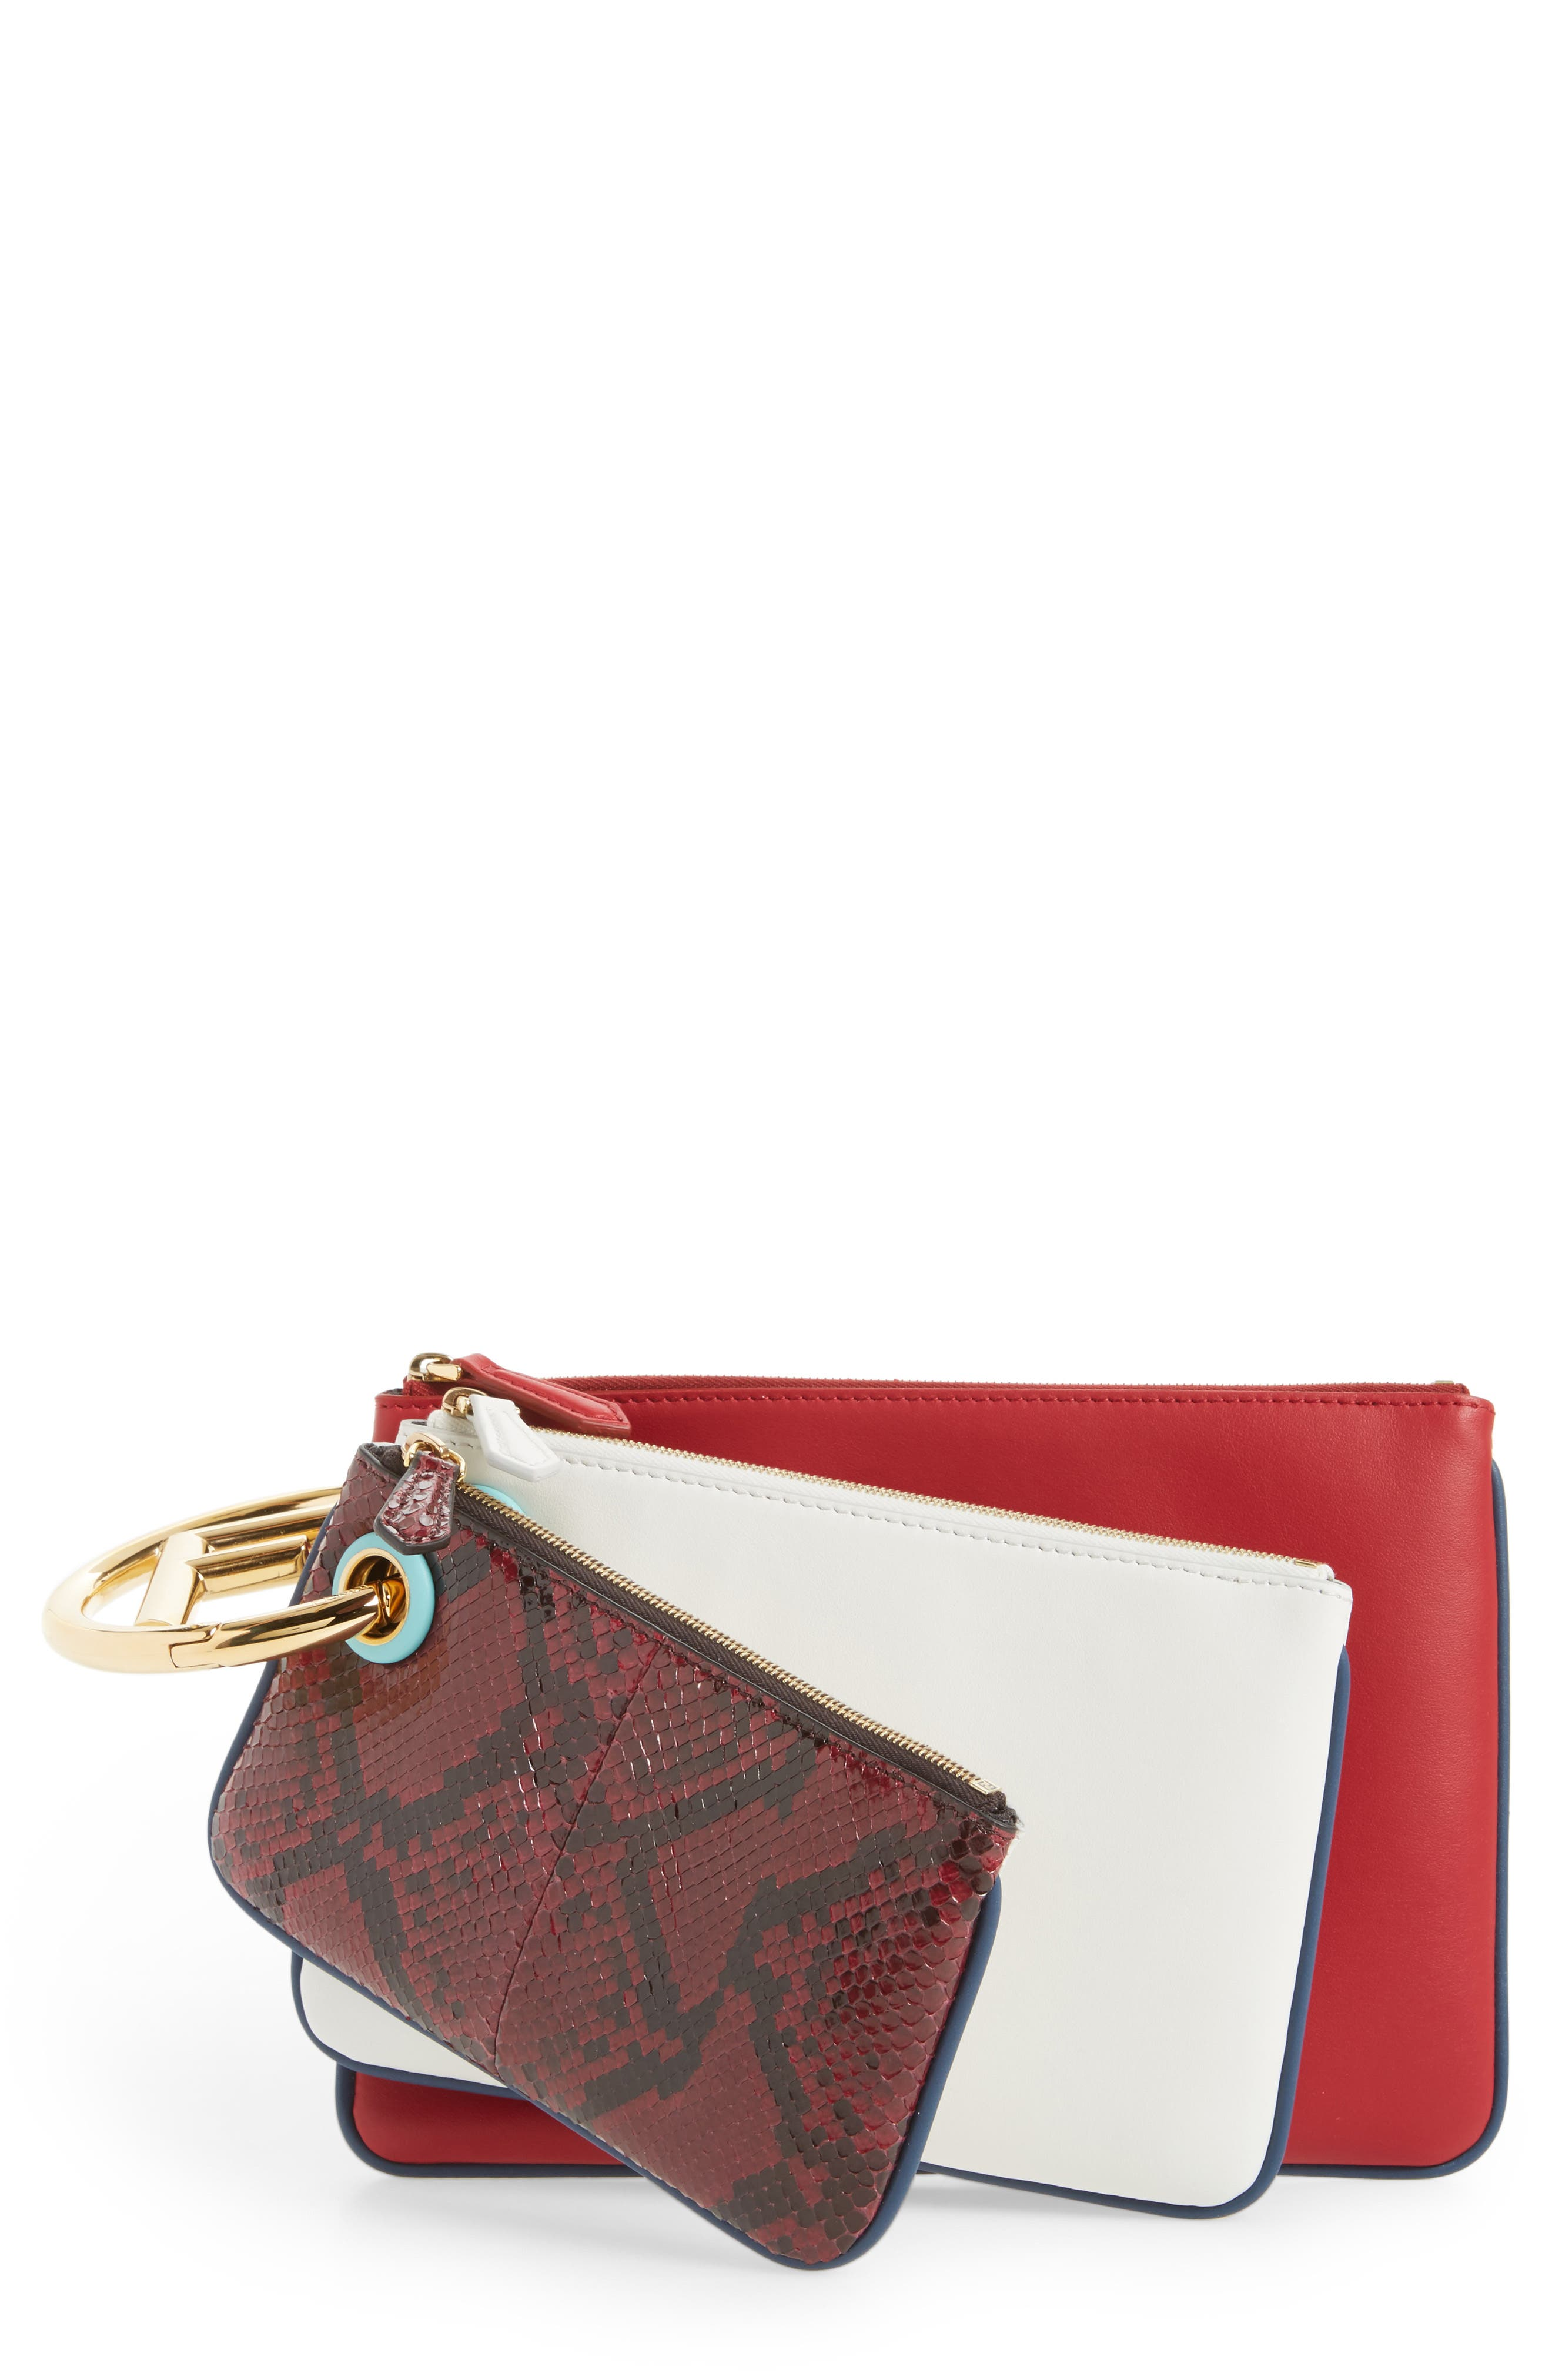 Set of Three Calfskin Leather & Genuine Python Pouches,                             Main thumbnail 1, color,                             Red/ White/ Python